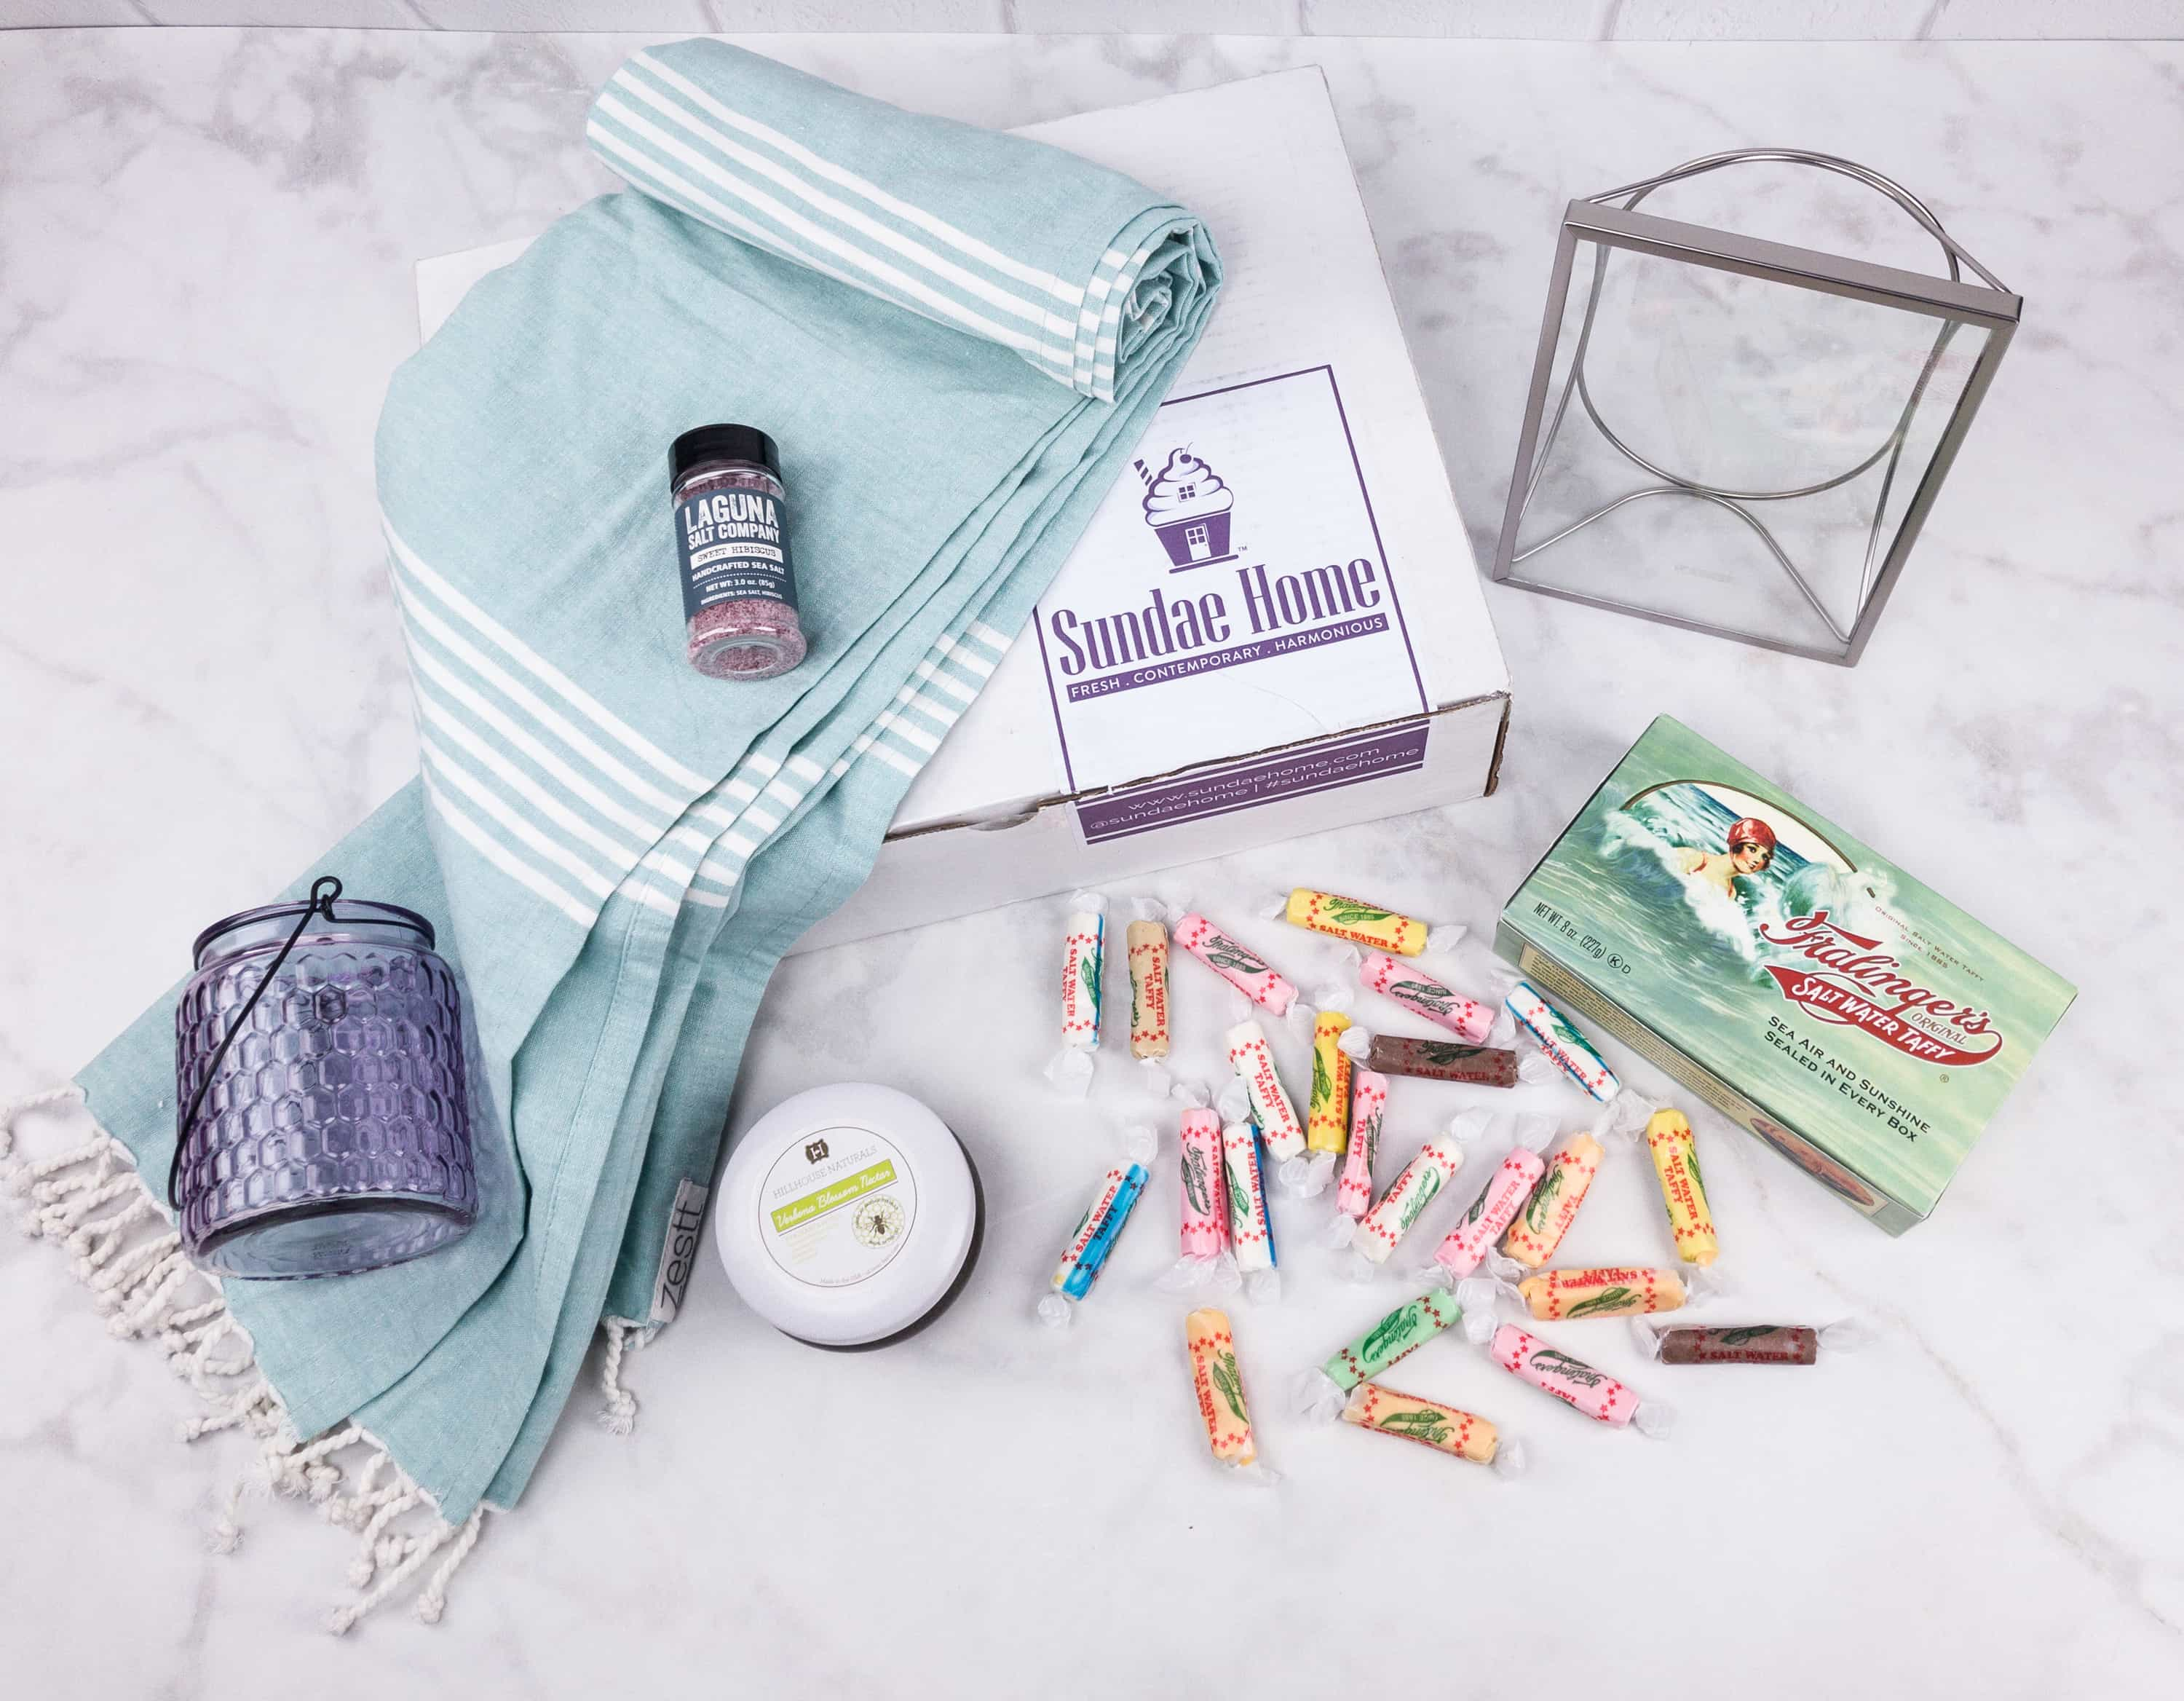 Sundae Home August 2017 Subscription Box Review + Coupon!